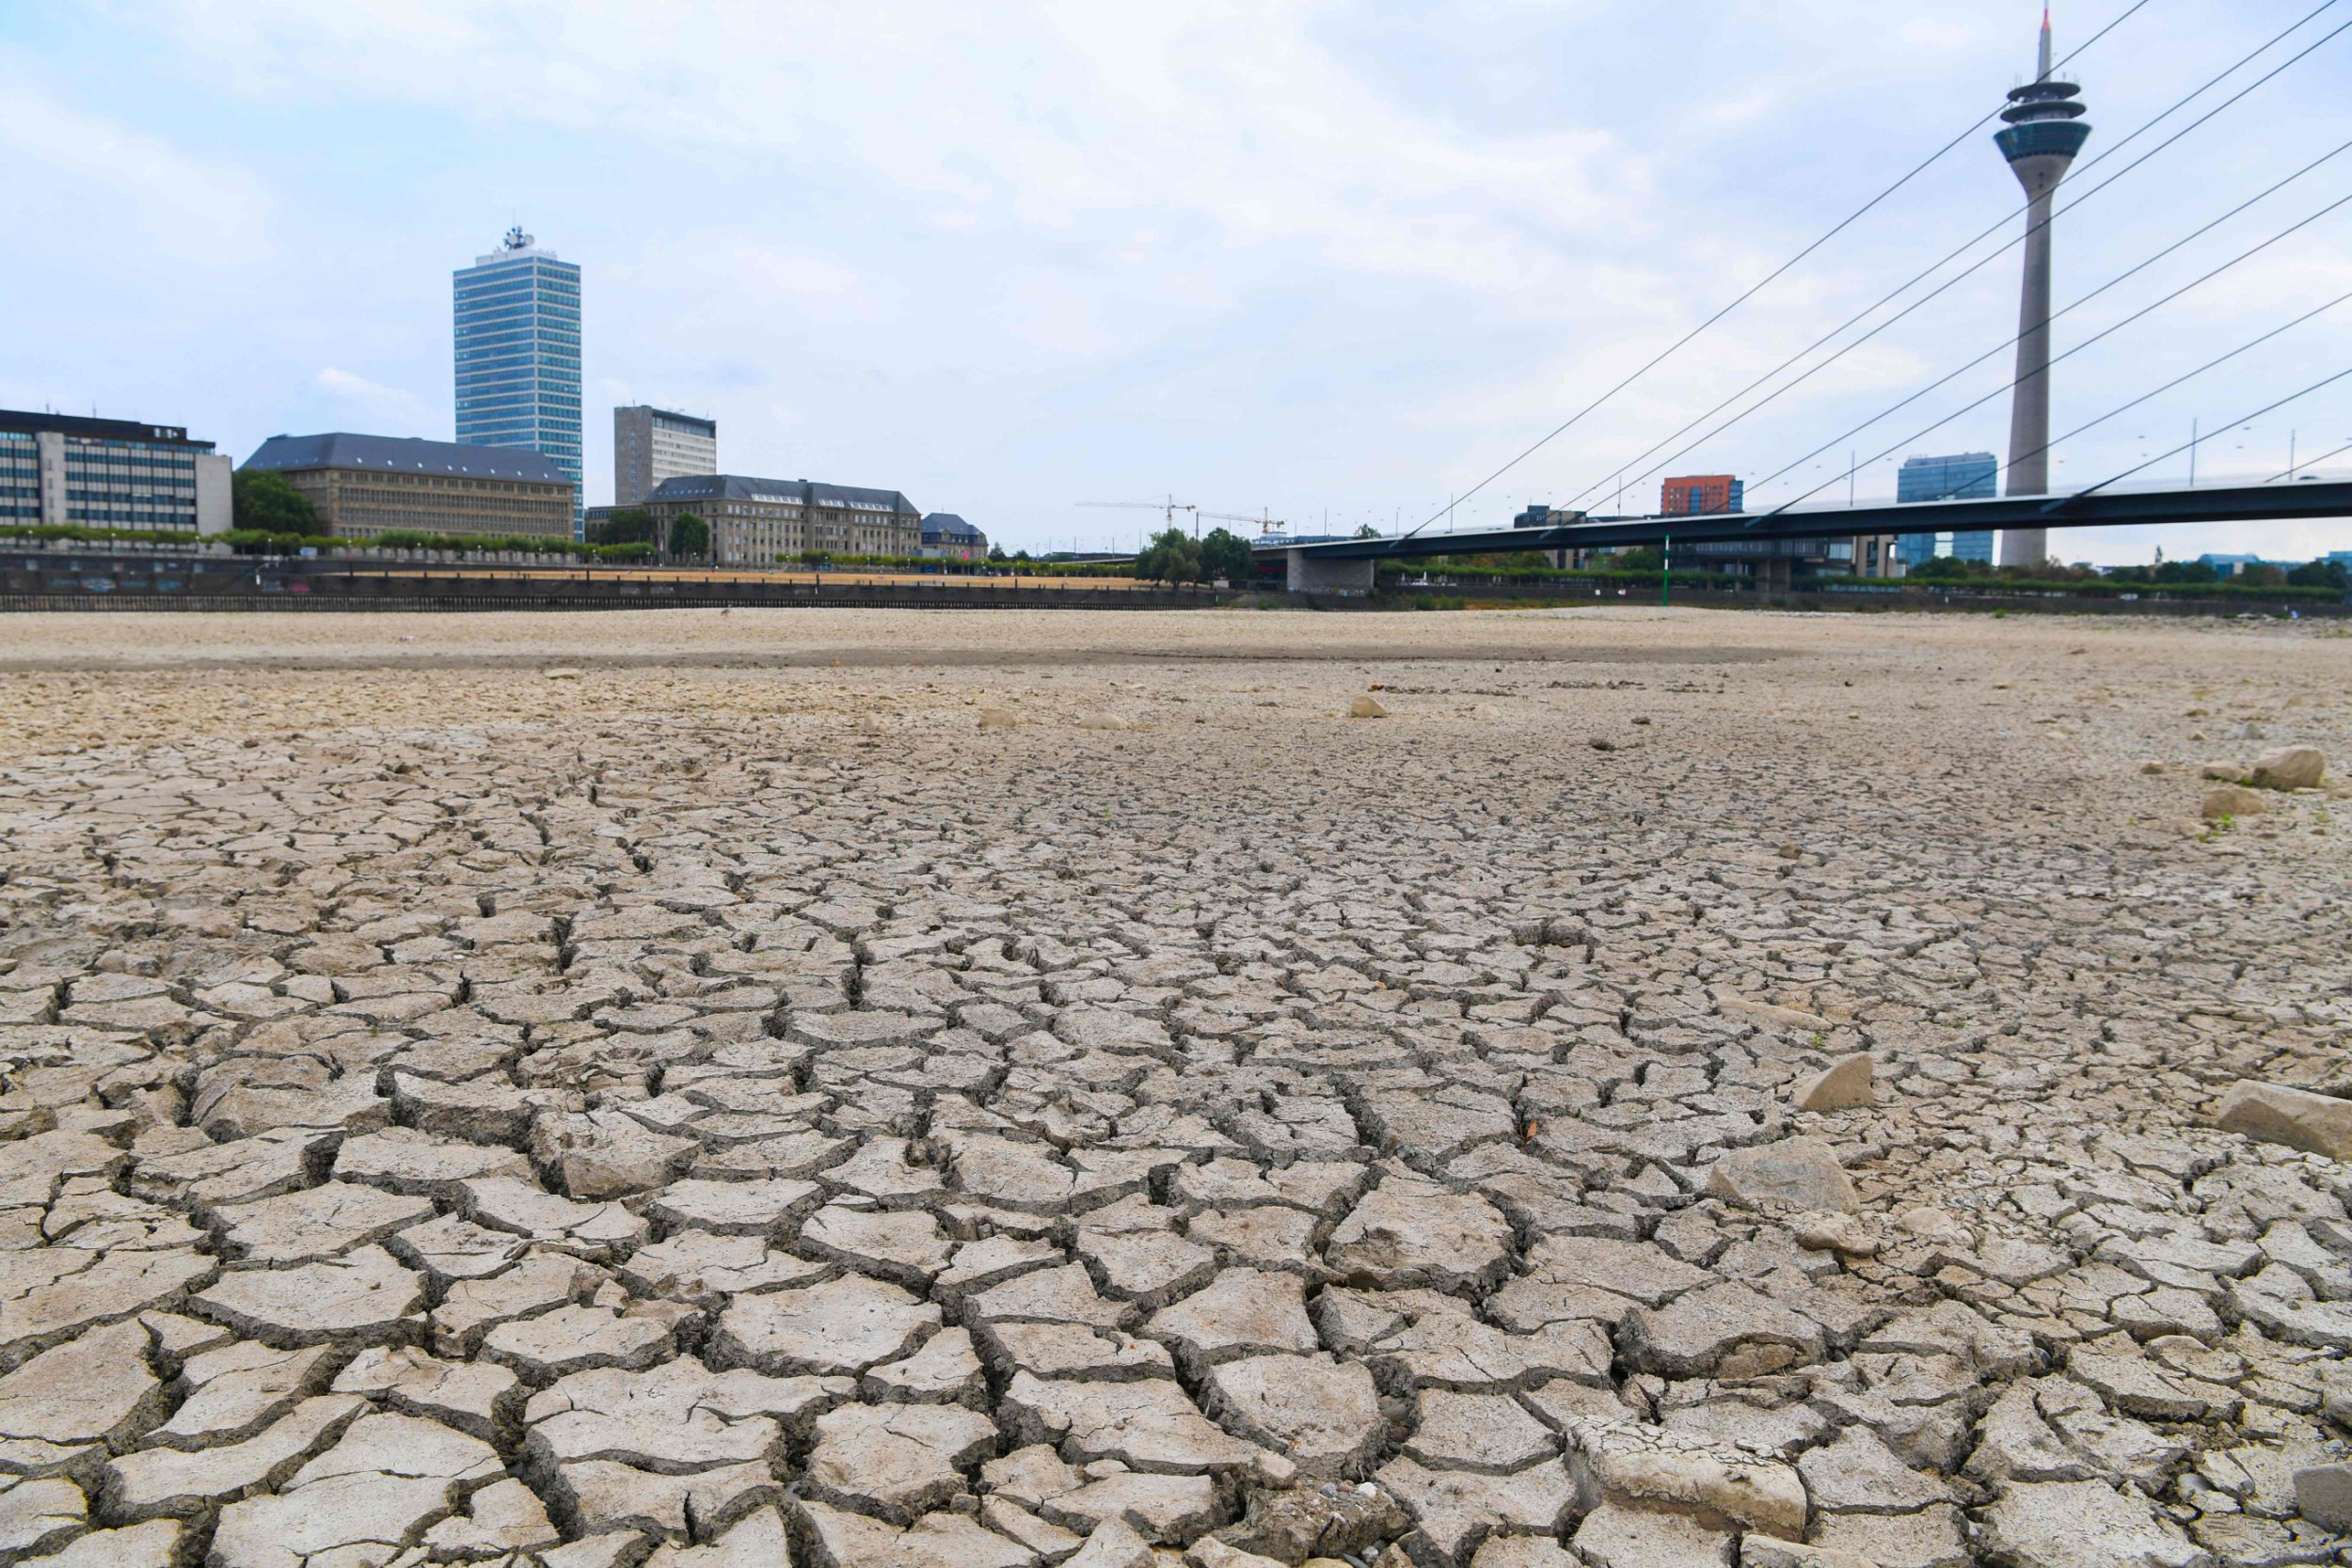 The river bed of the Rhine is dried on August 8, 2018 in Duesseldorf, western Germany, as the heatwave goes on. (Photo by Patrik STOLLARZ / AFP)PATRIK STOLLARZ/AFP/Getty Images